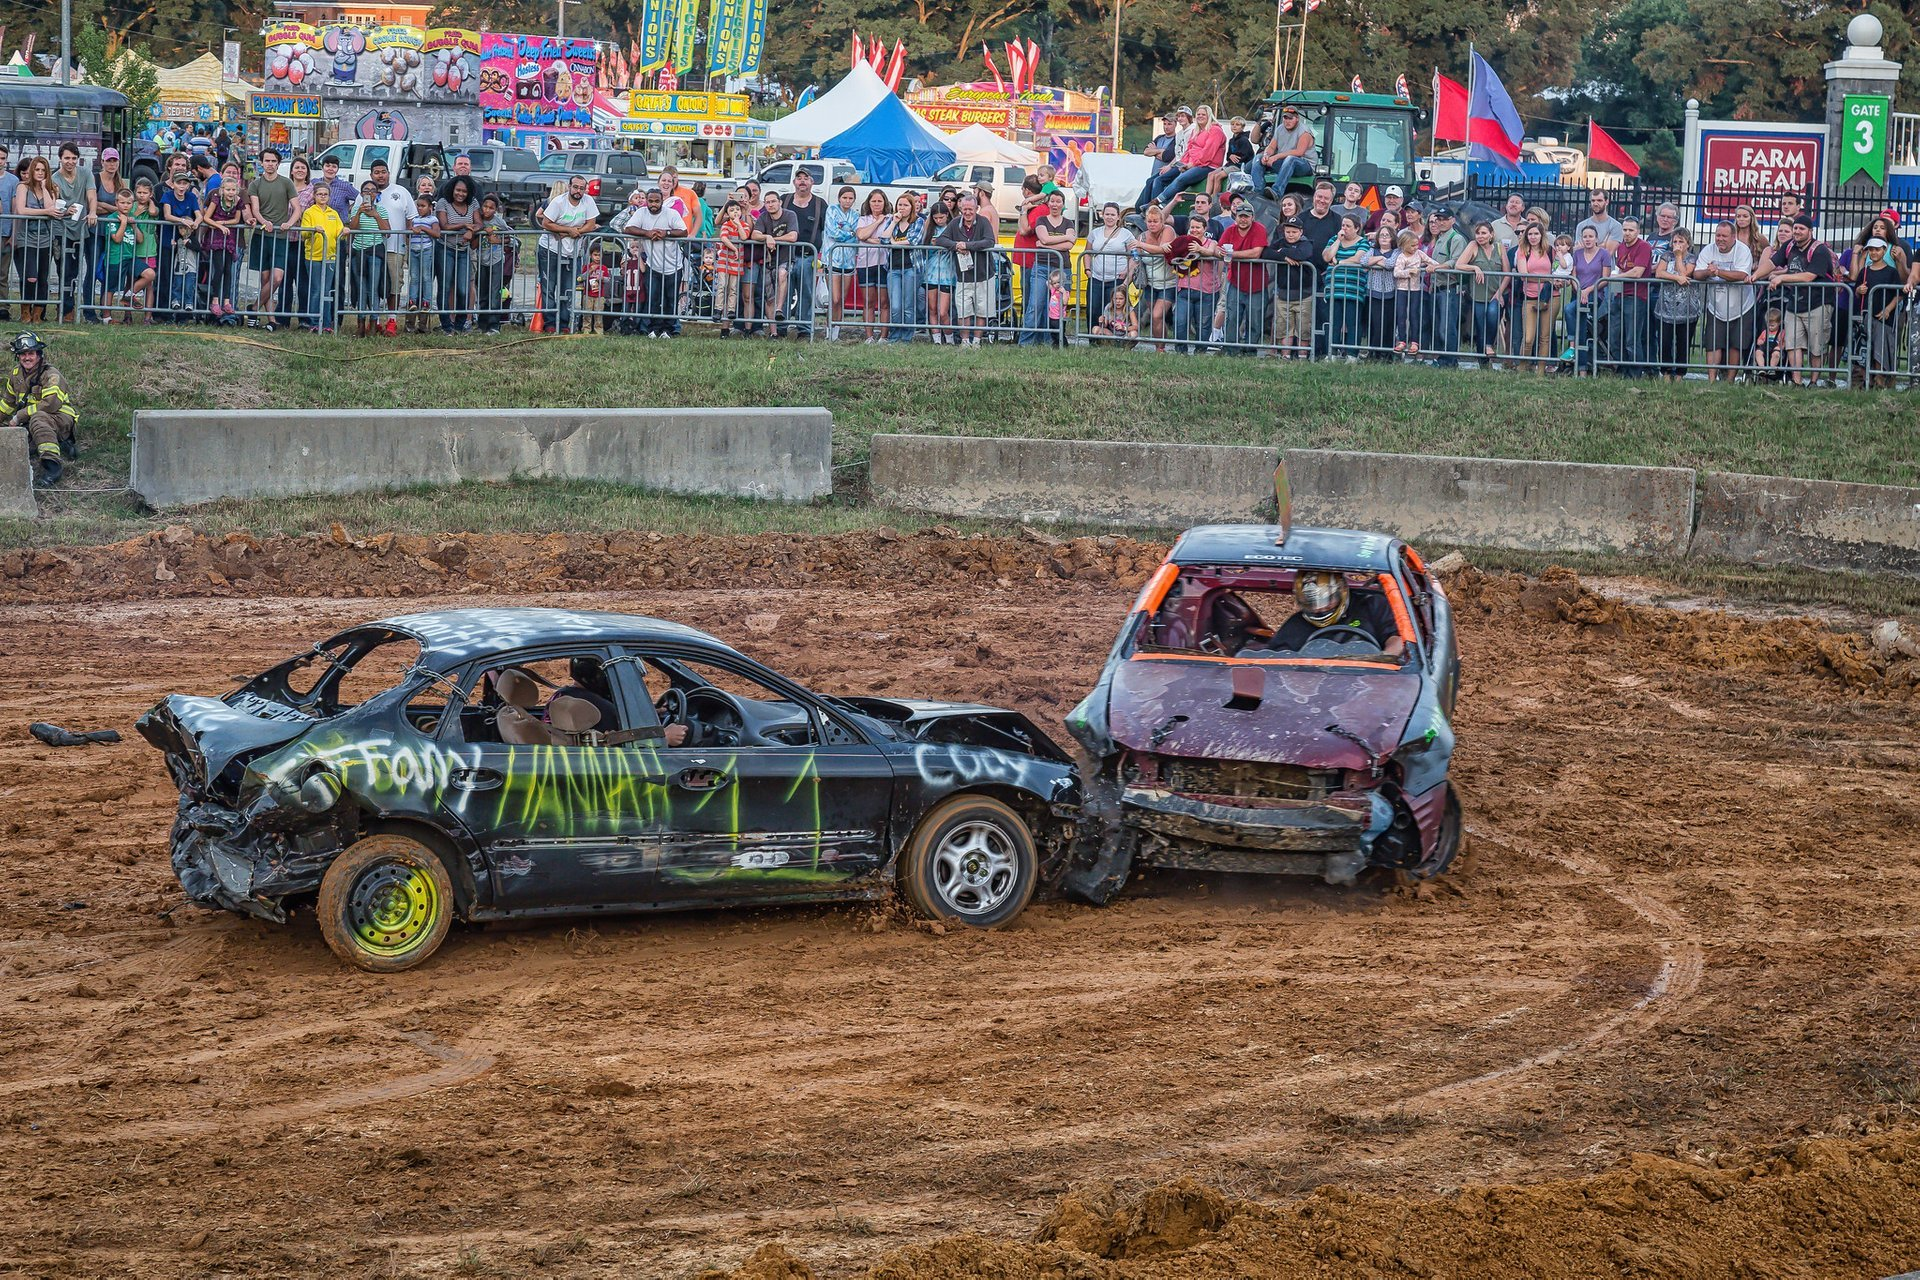 State Fair Demo Derby 2020